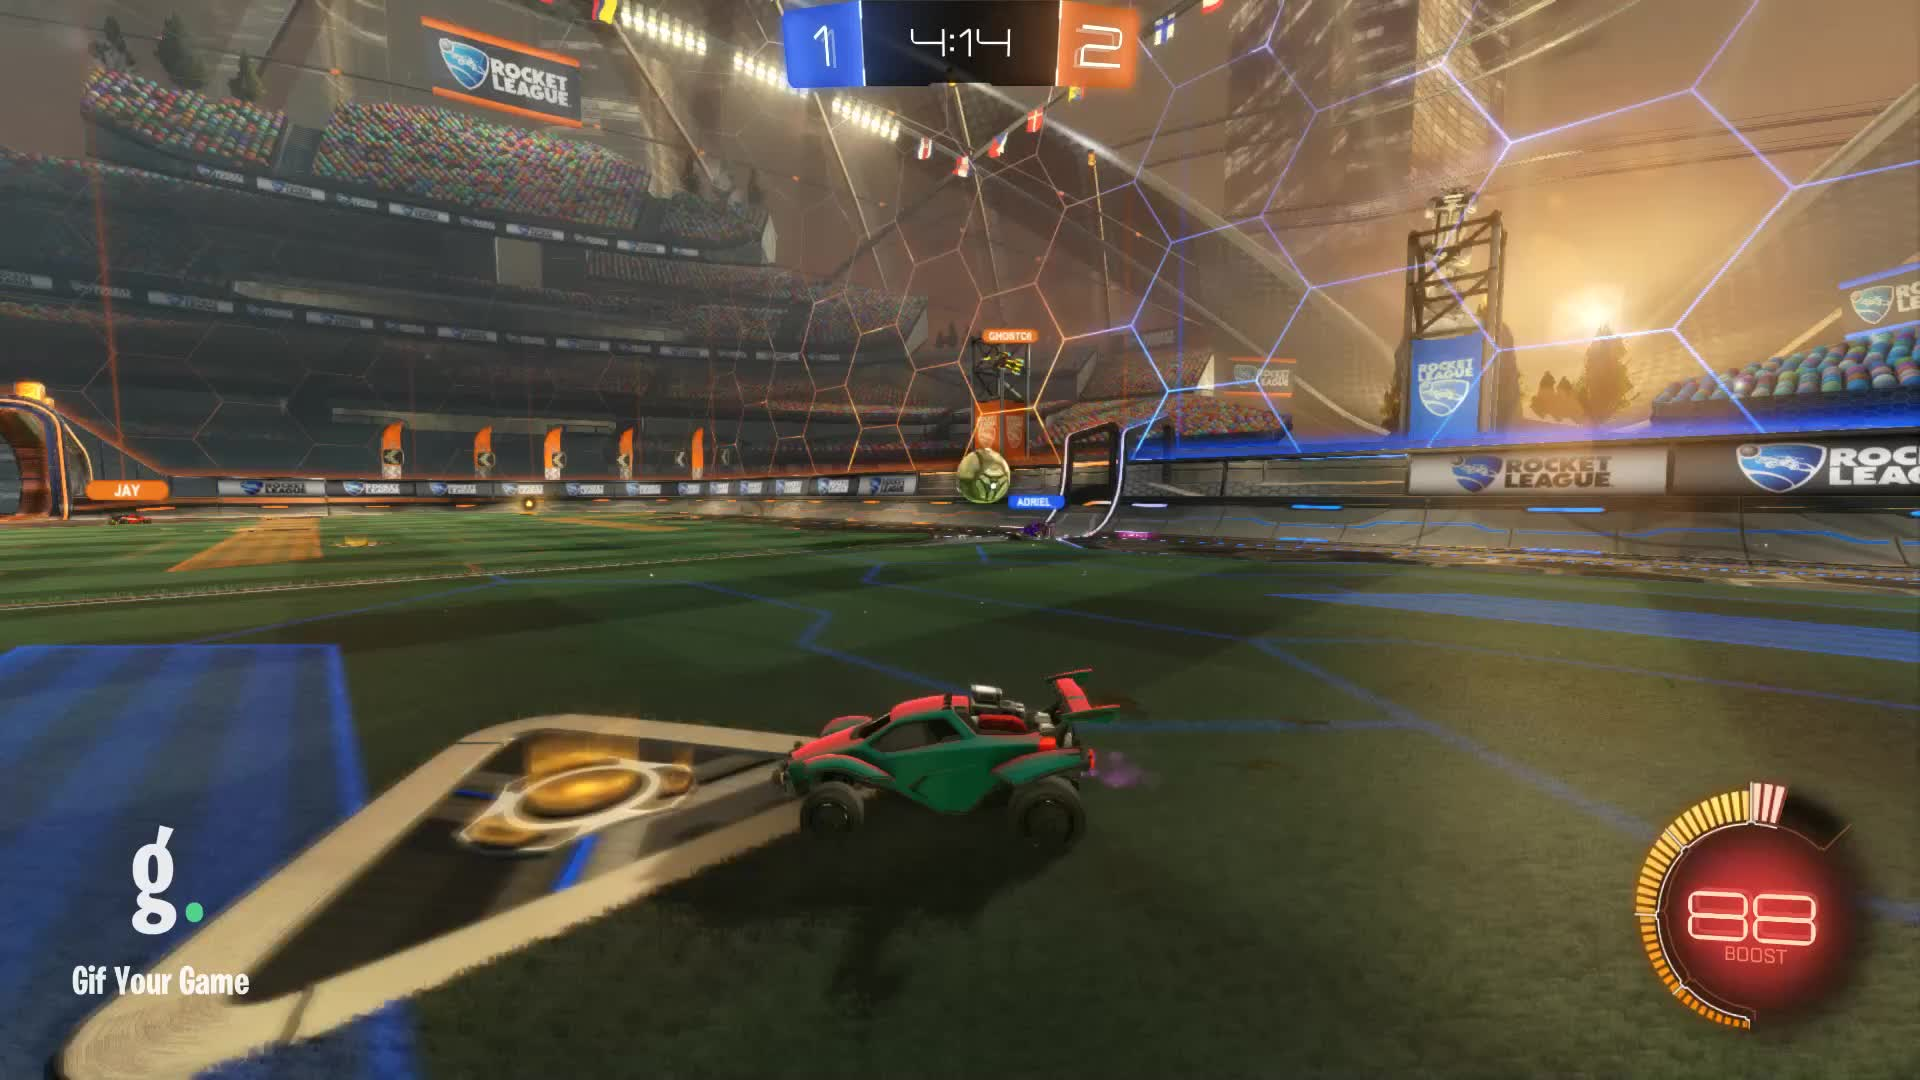 Gif Your Game, GifYourGame, Goal, Rocket League, RocketLeague, twiist., Goal 4: twiist. GIFs